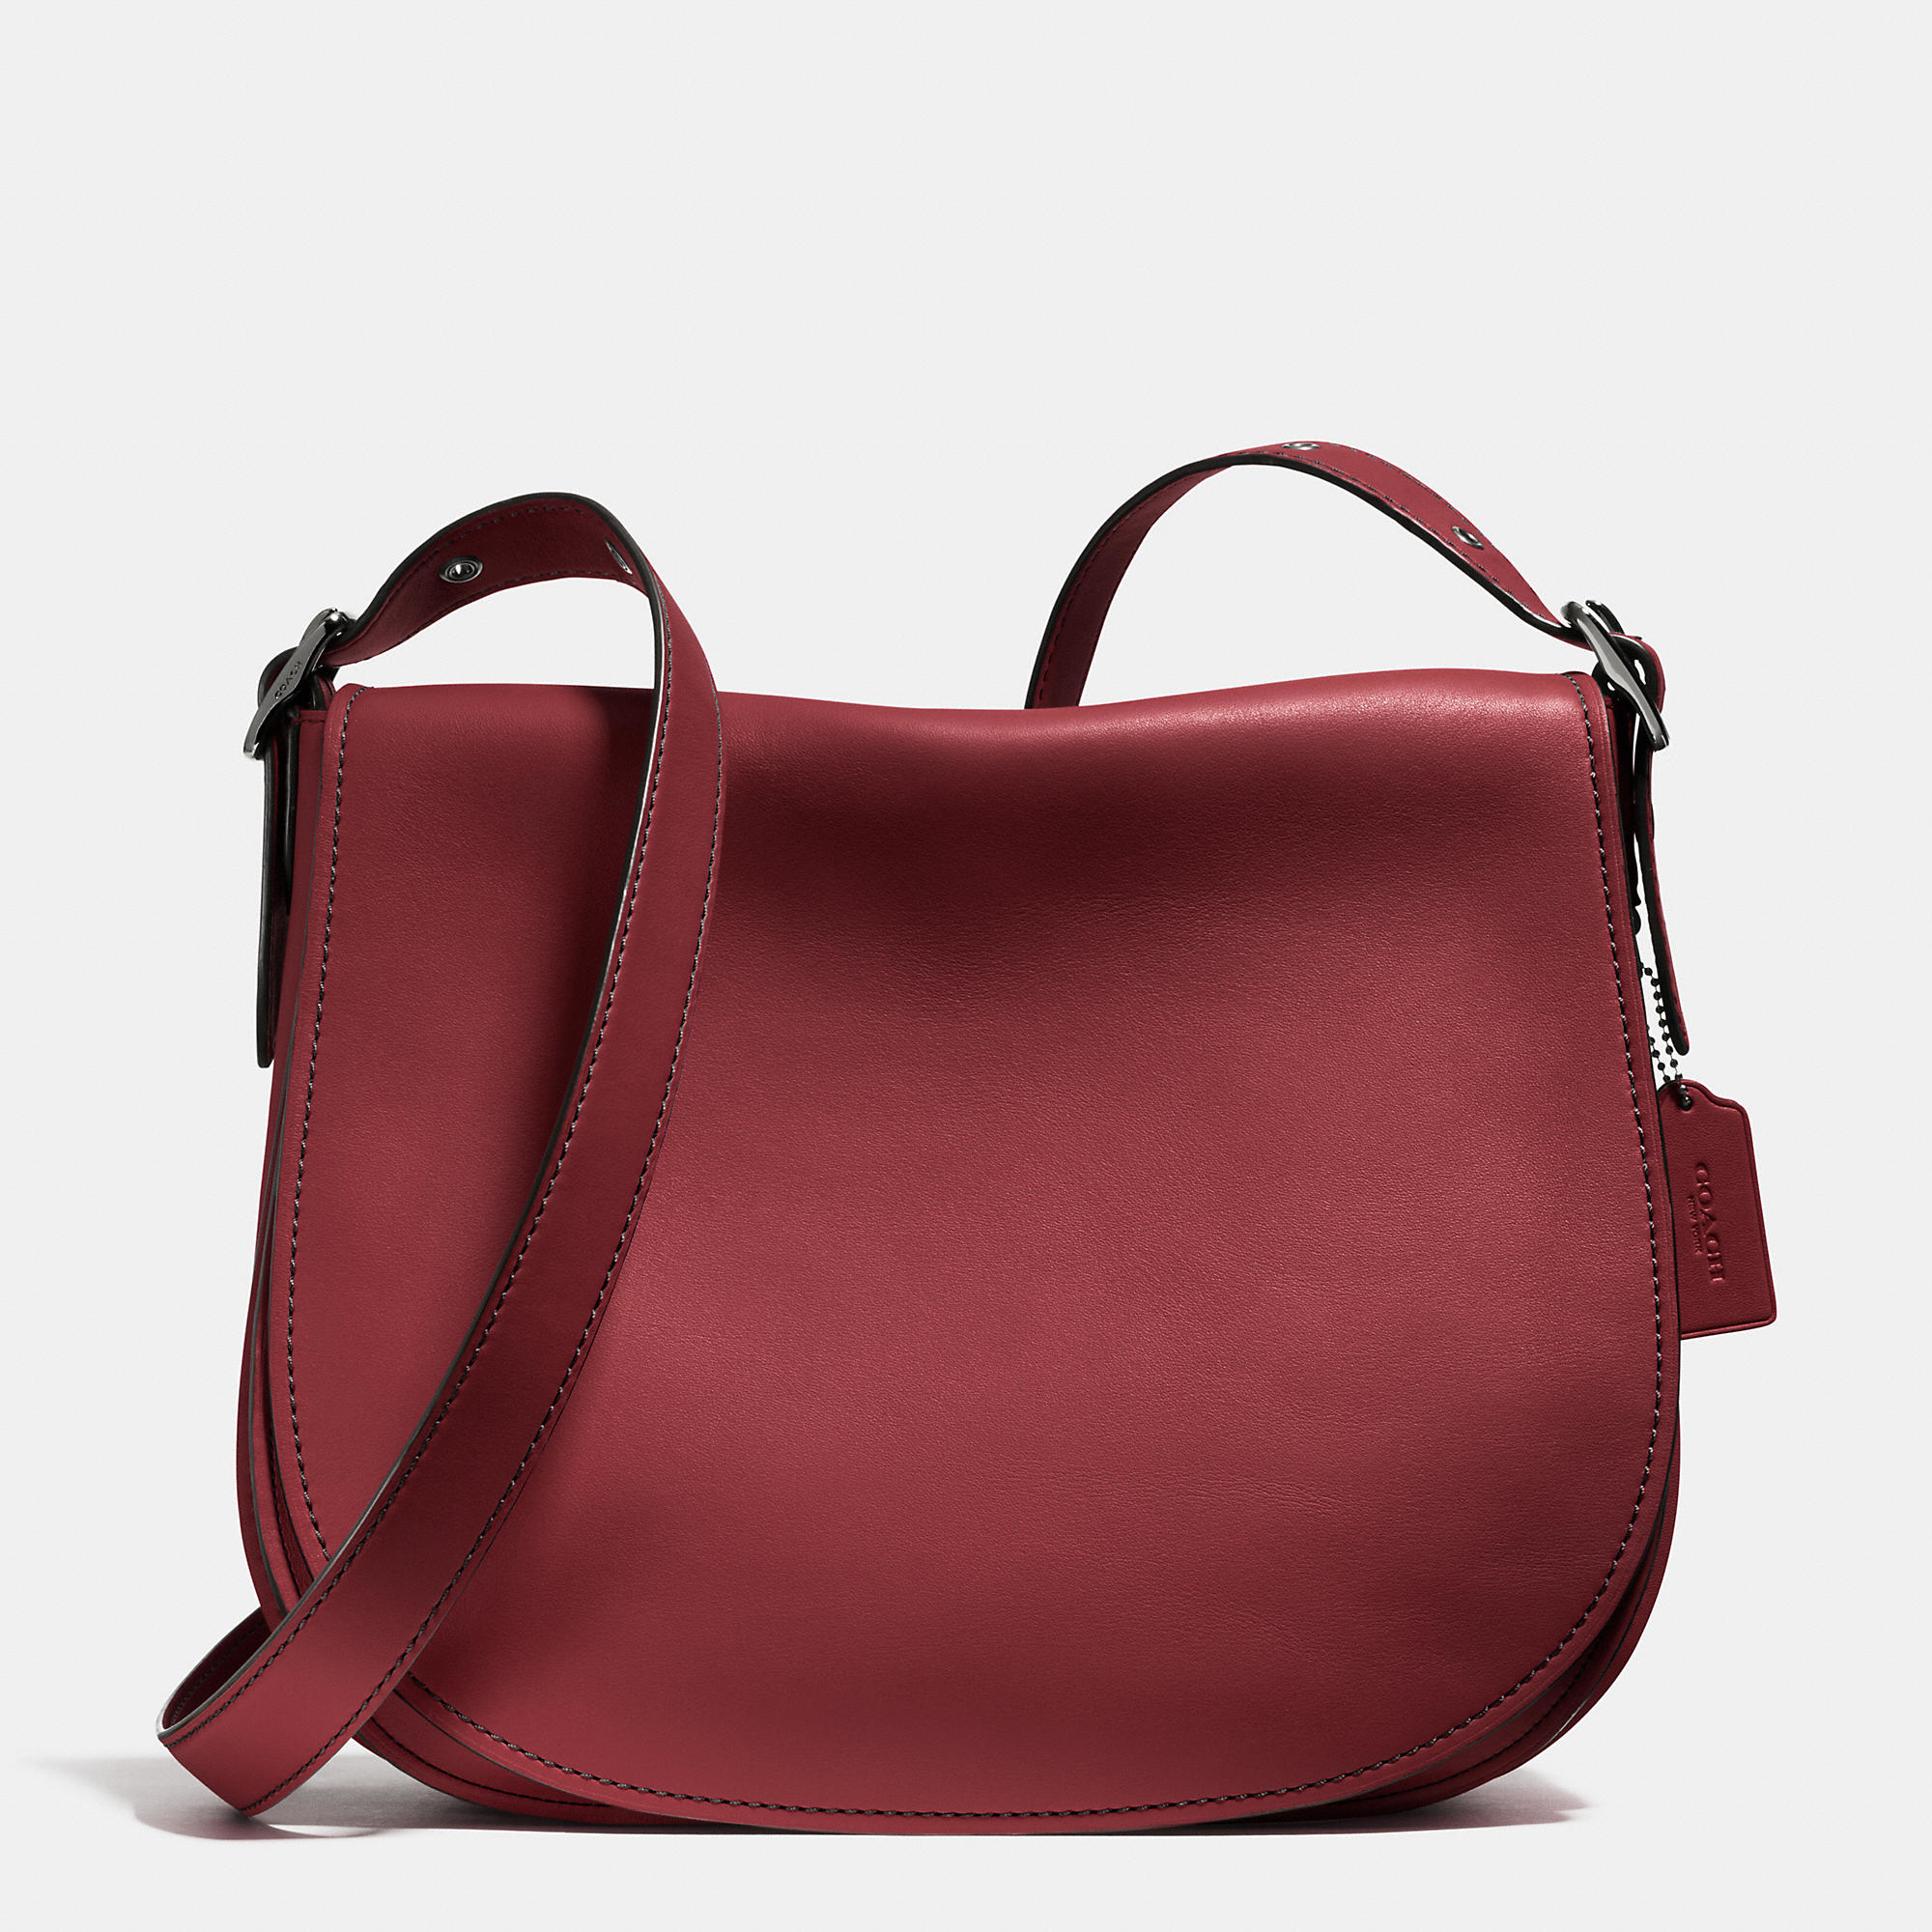 Coach Saddle Bag 35 In Glovetanned Leather In Purple Lyst